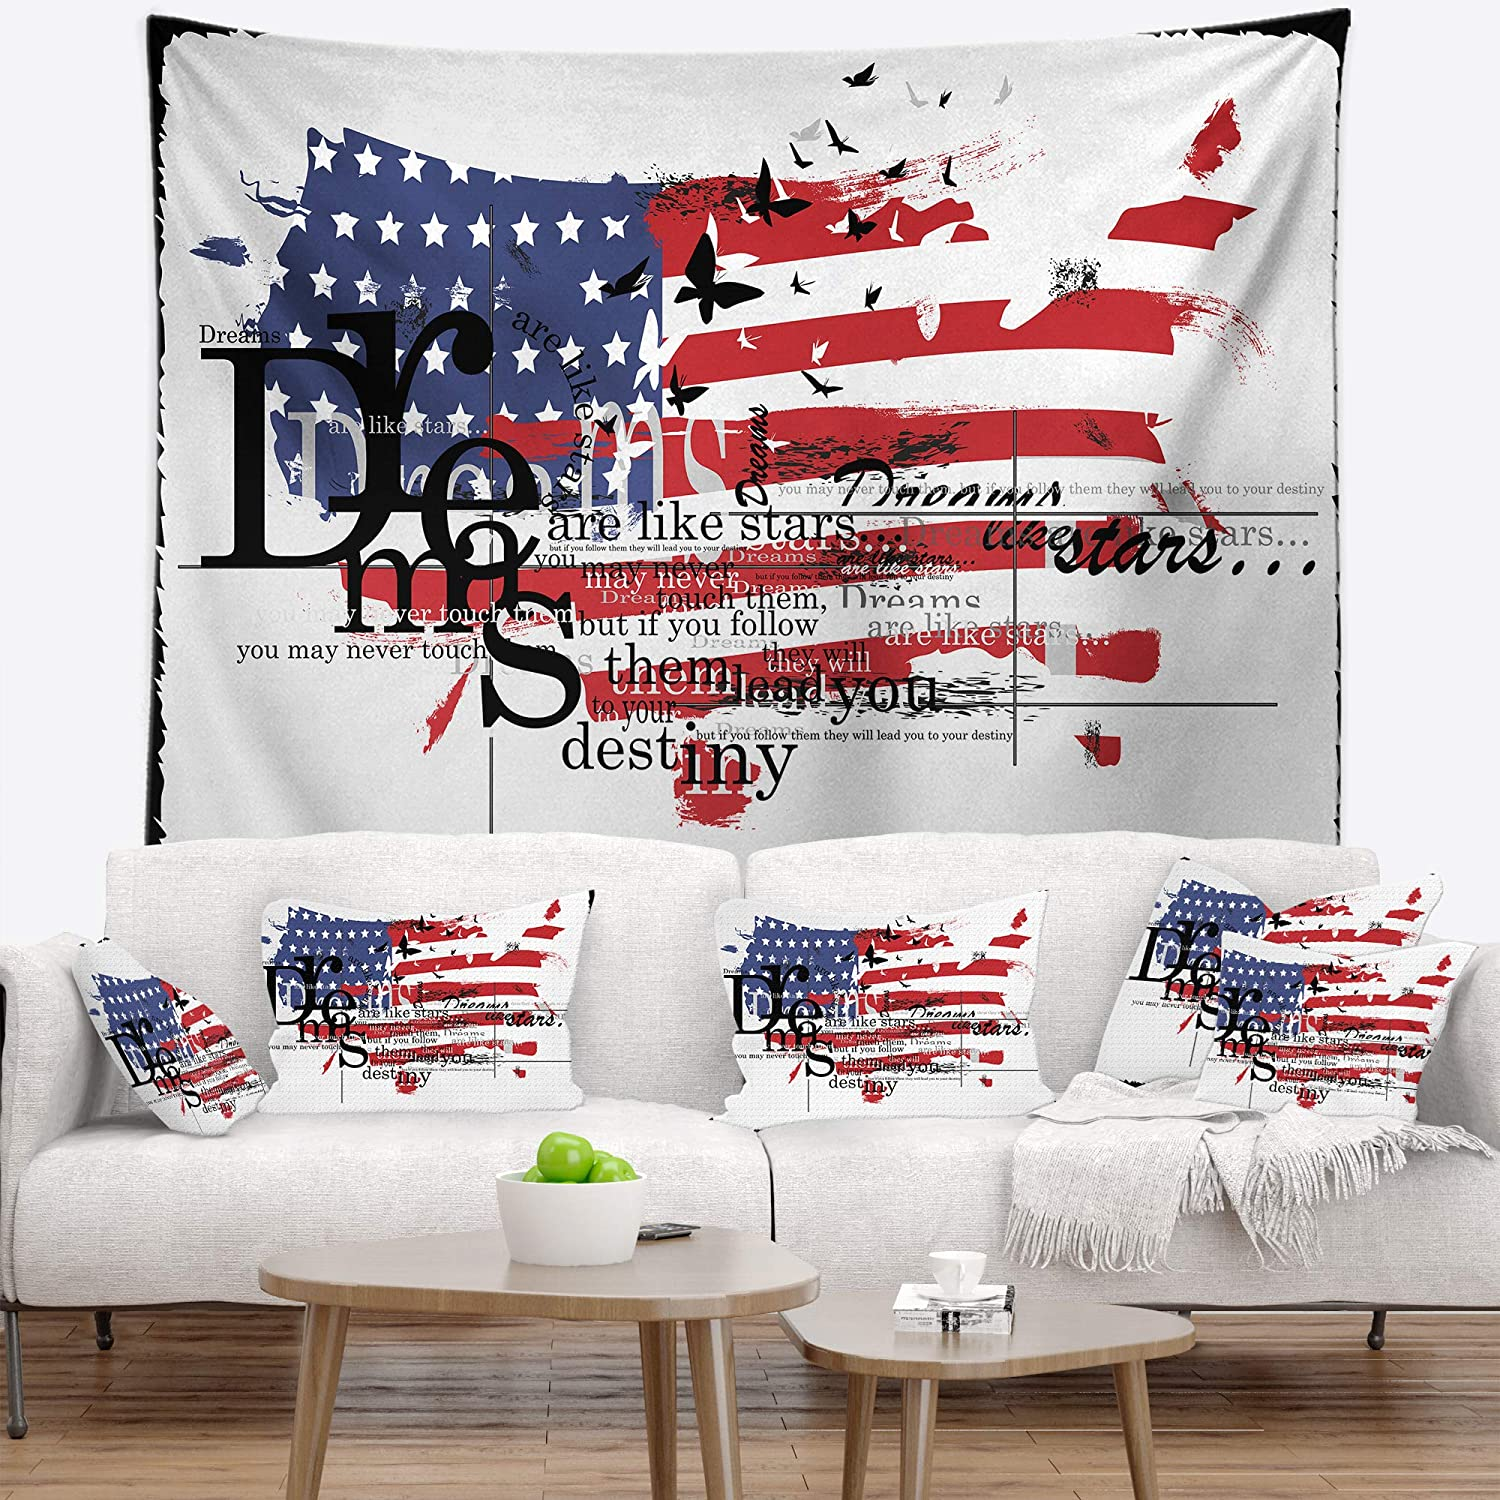 Designart 'Vintage Fashion USA Flag' Map Tapestry Blanket Décor Wall Art for Home and Office, Created On Lightweight Polyester Fabric Medium: 39 in. x 32 in